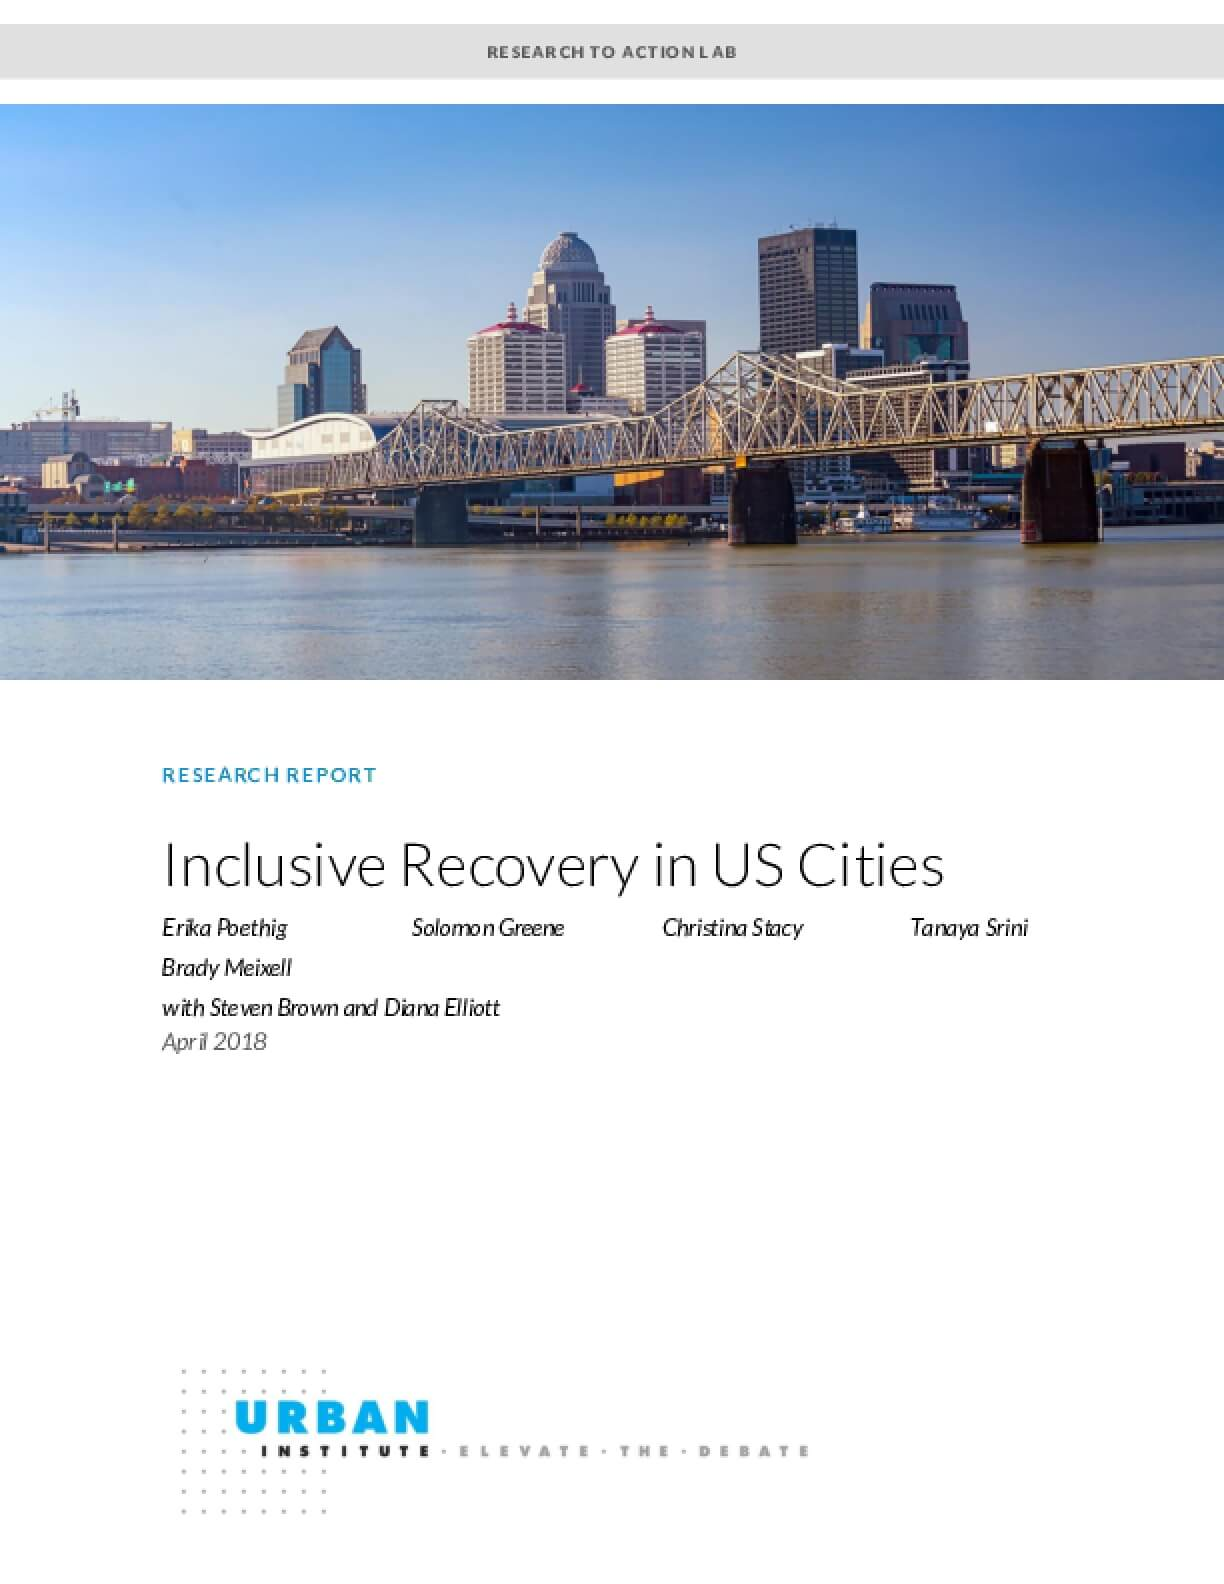 Inclusive Recovery in US Cities